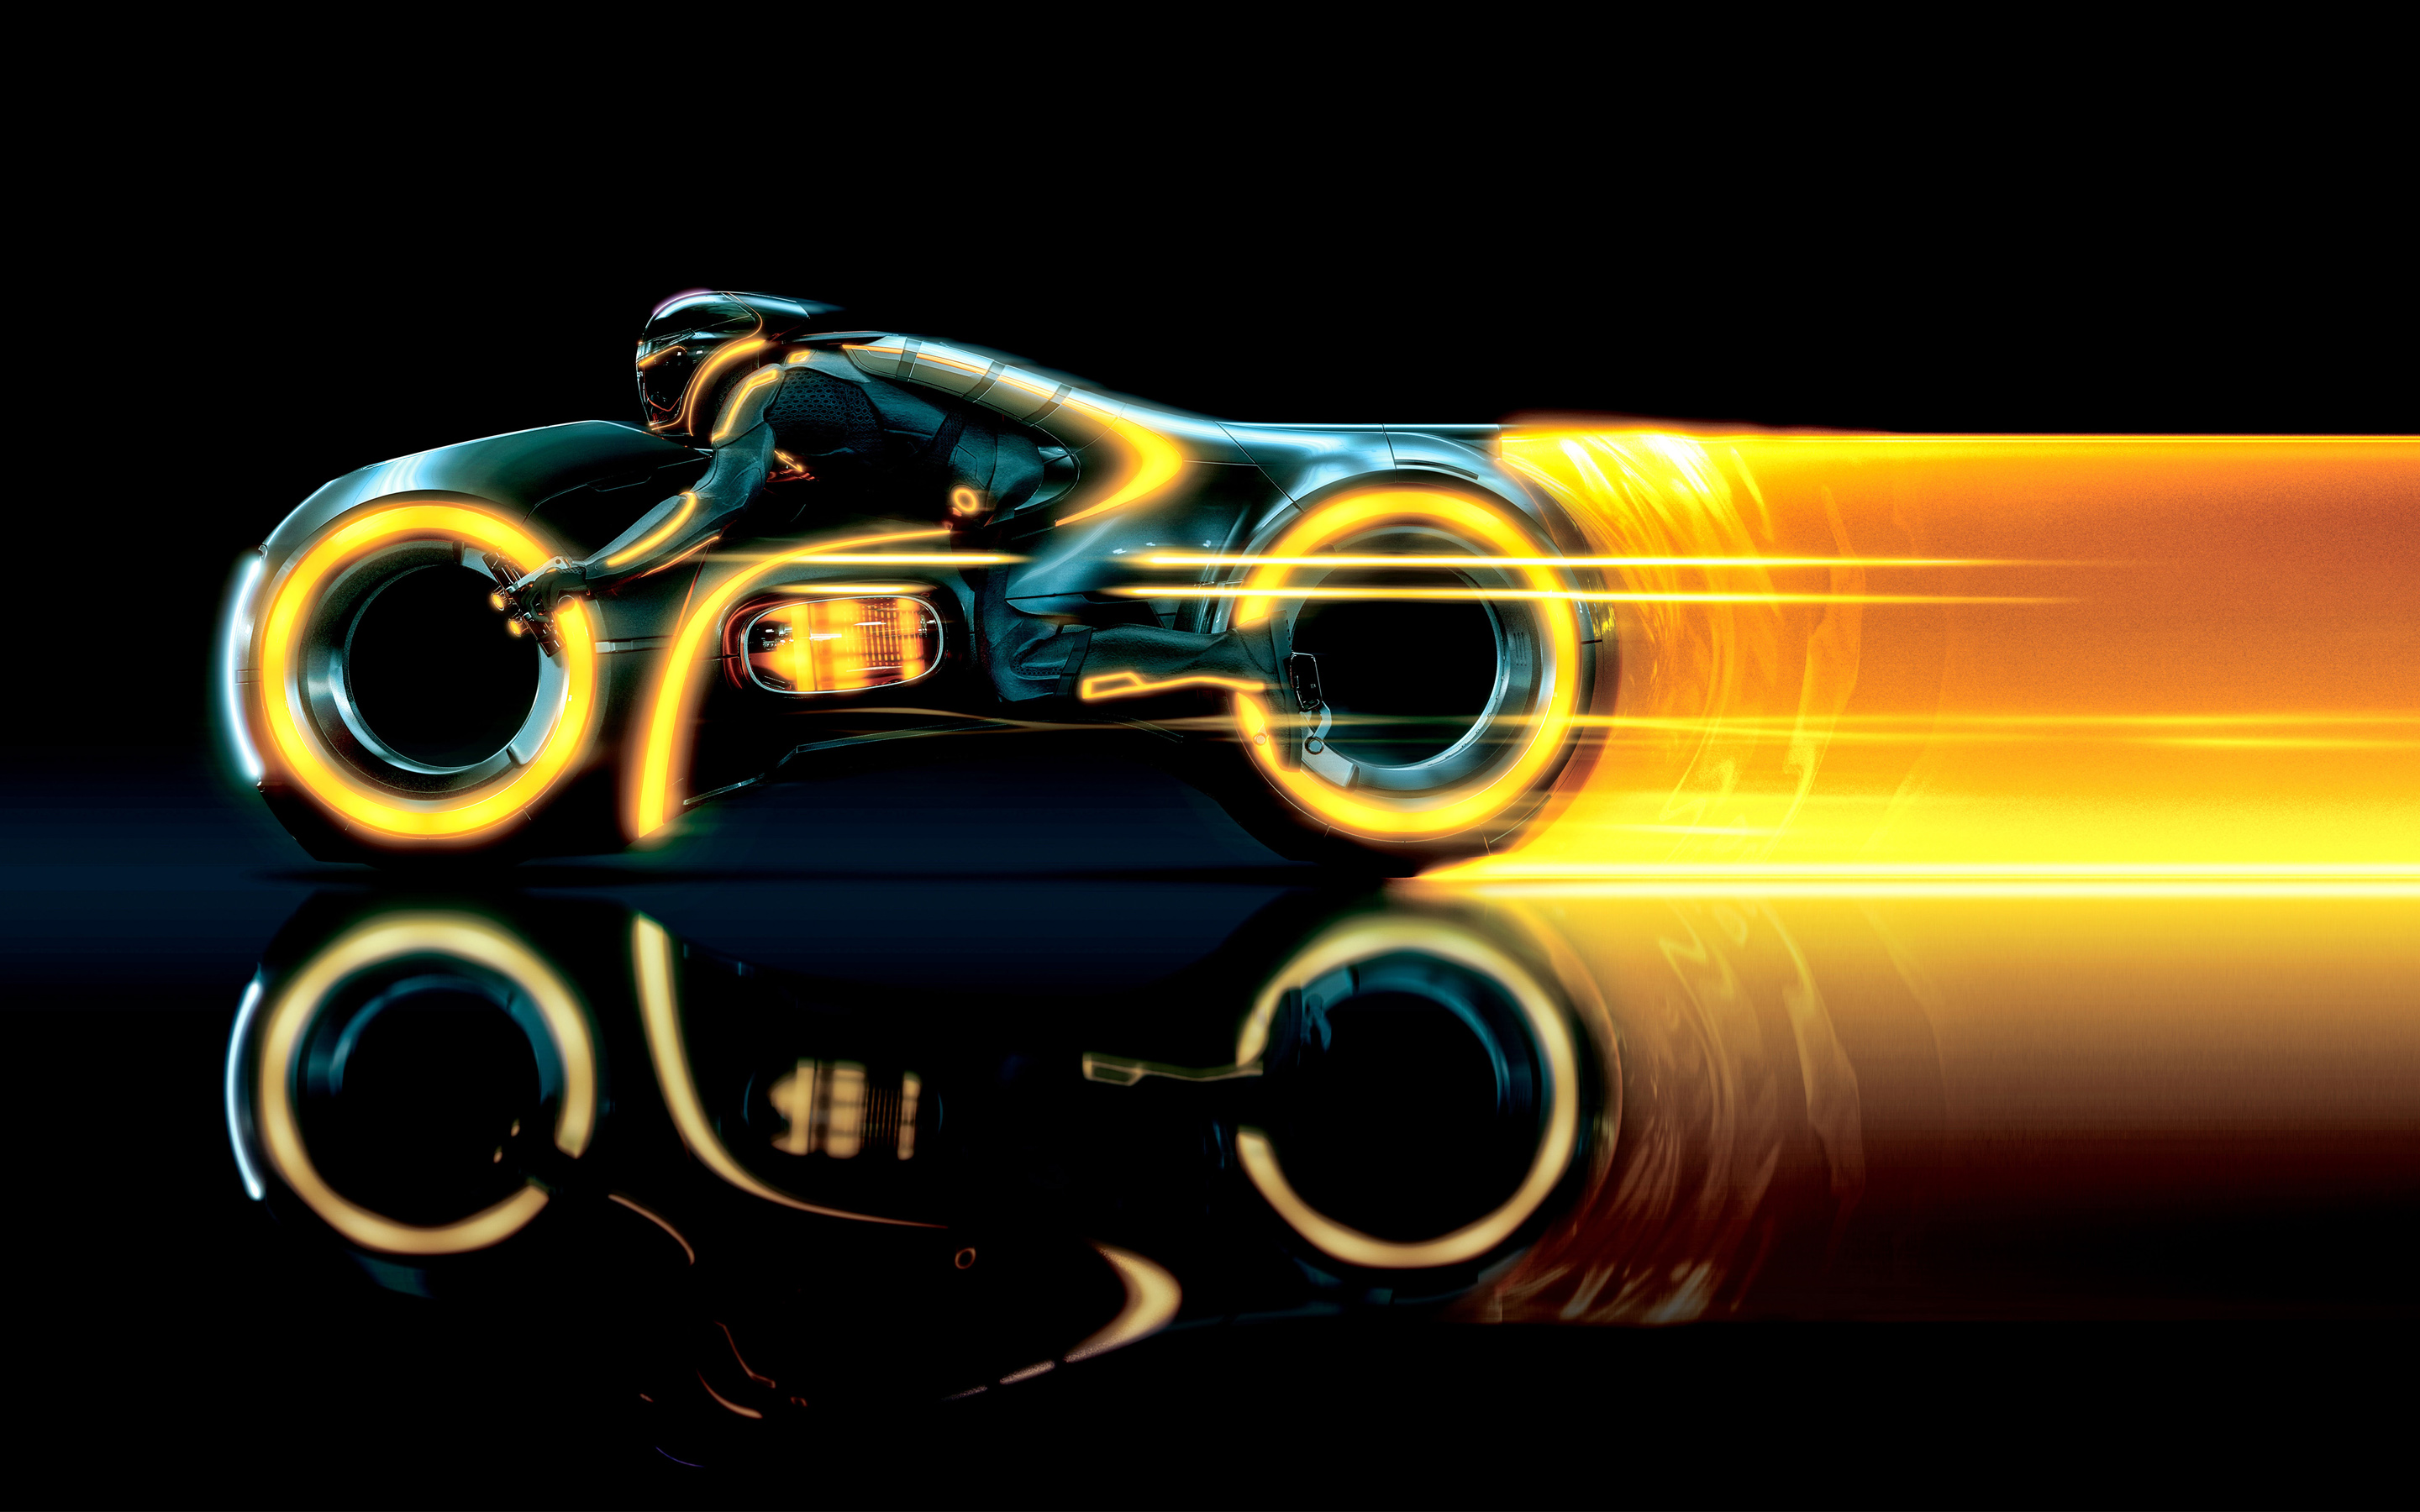 Tron Legacy Light Cycle #4190233, 1920x1200 | All For Desktop